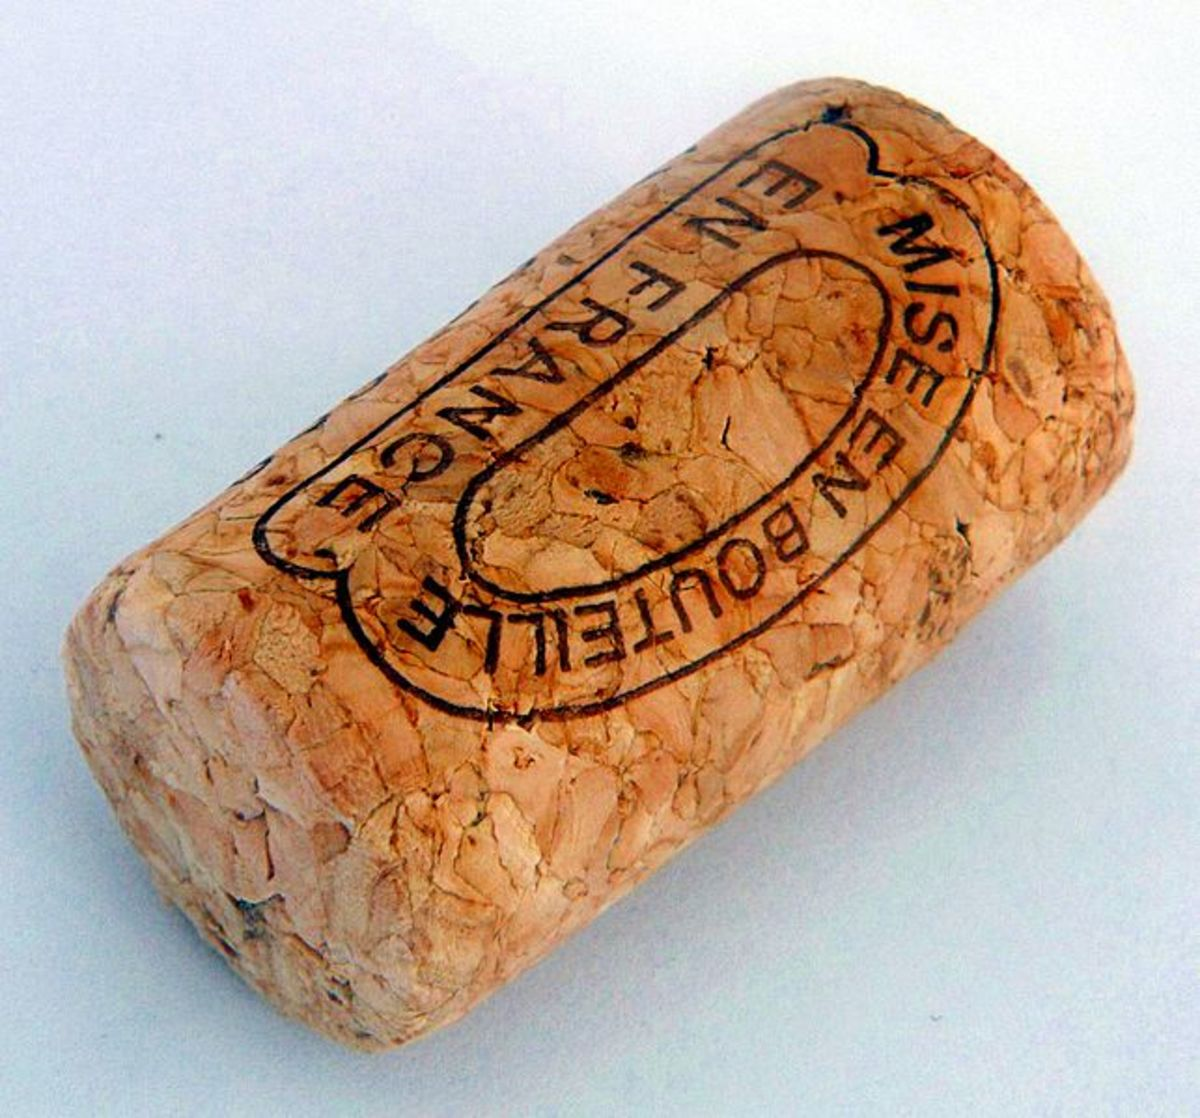 A traditional cork wine stopper